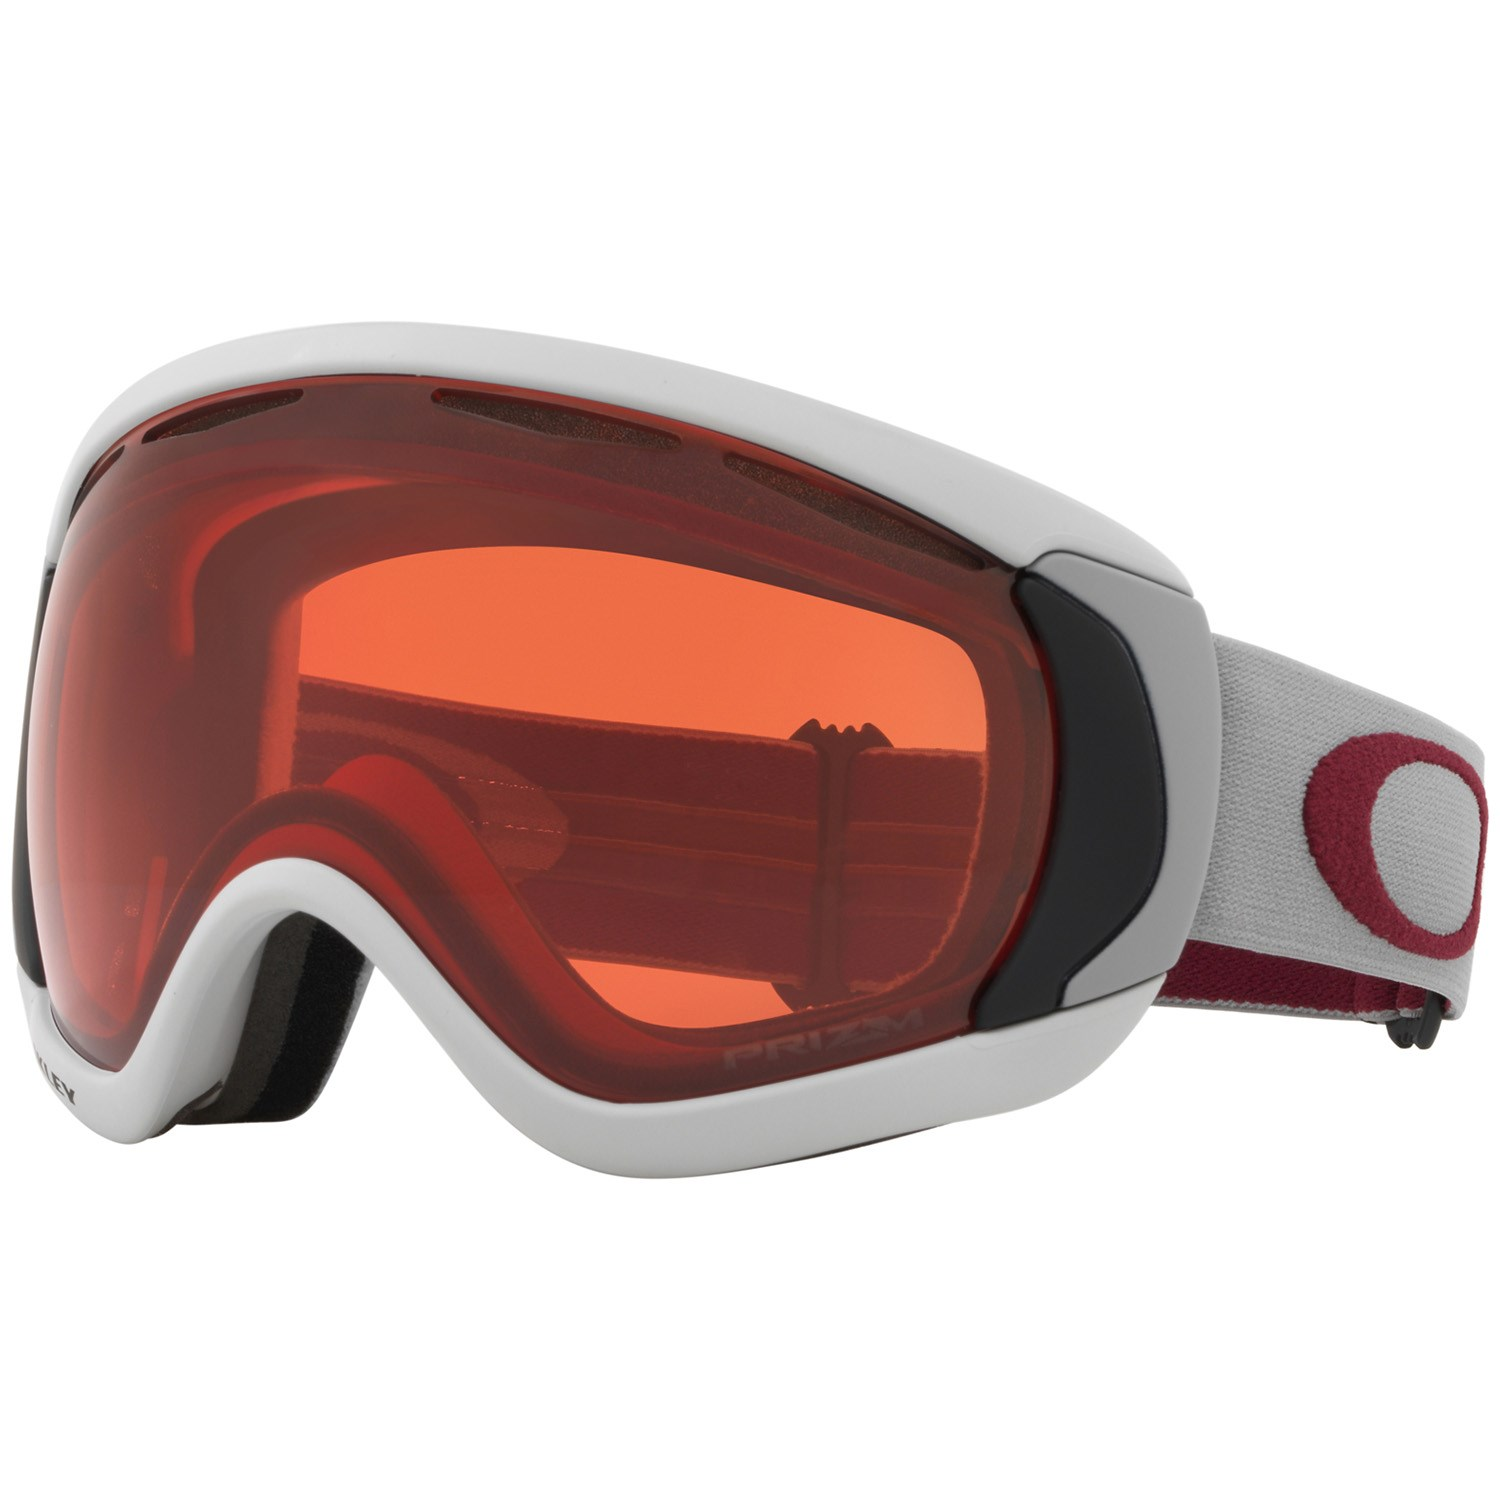 10c07a2be3d Oakley Canopy Goggles